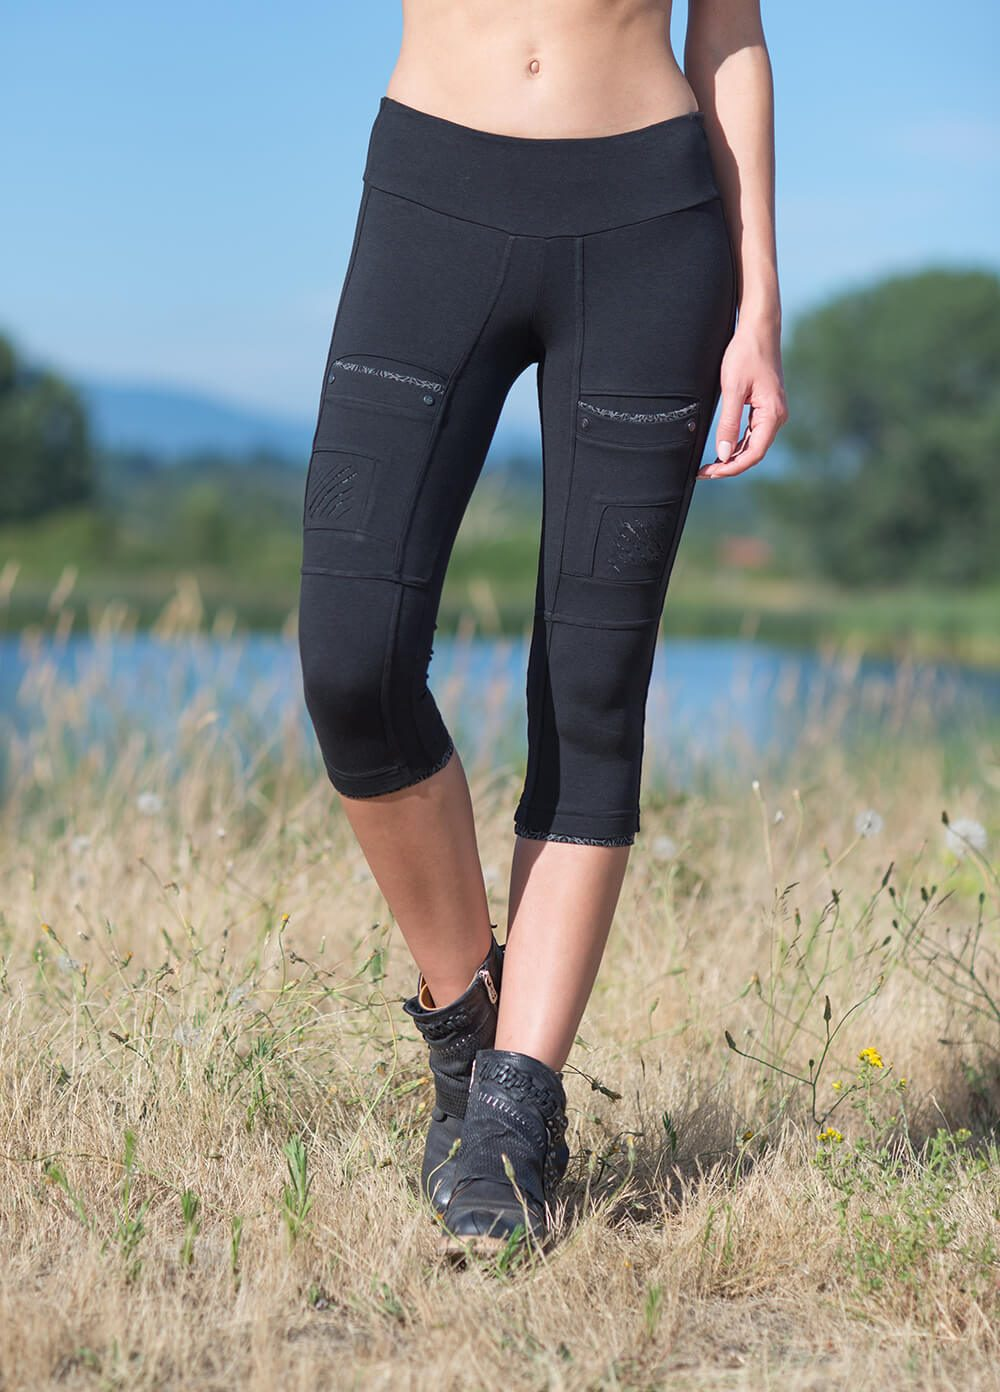 Organic cotton and bamboo 3/4 leggings with print showing thigh shreds and pockets on model, by Nomads Hemp Wear.